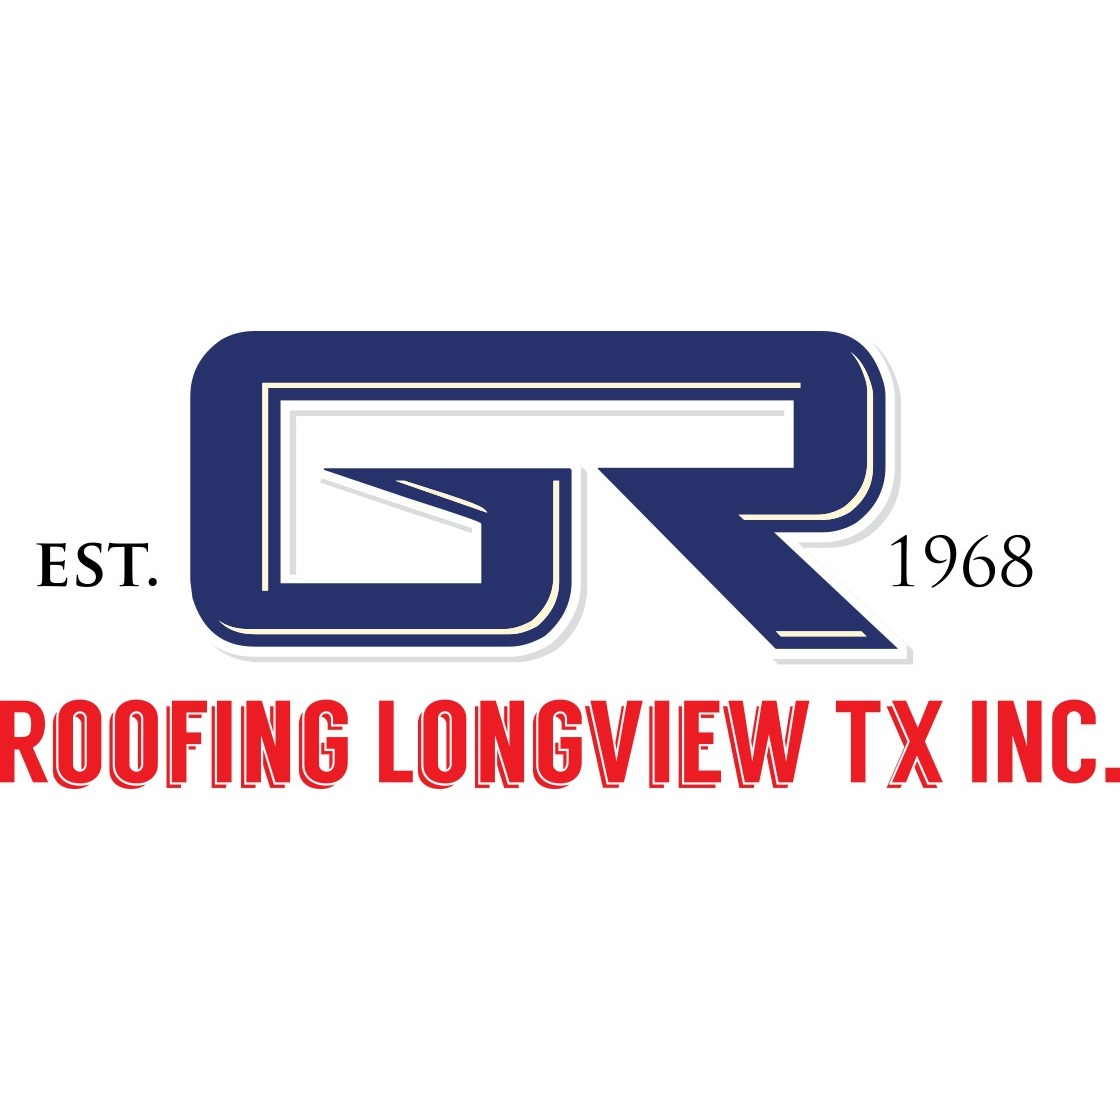 Roofing Longview Tx Inc. - Longview, TX 75605 - (903)767-4166 | ShowMeLocal.com